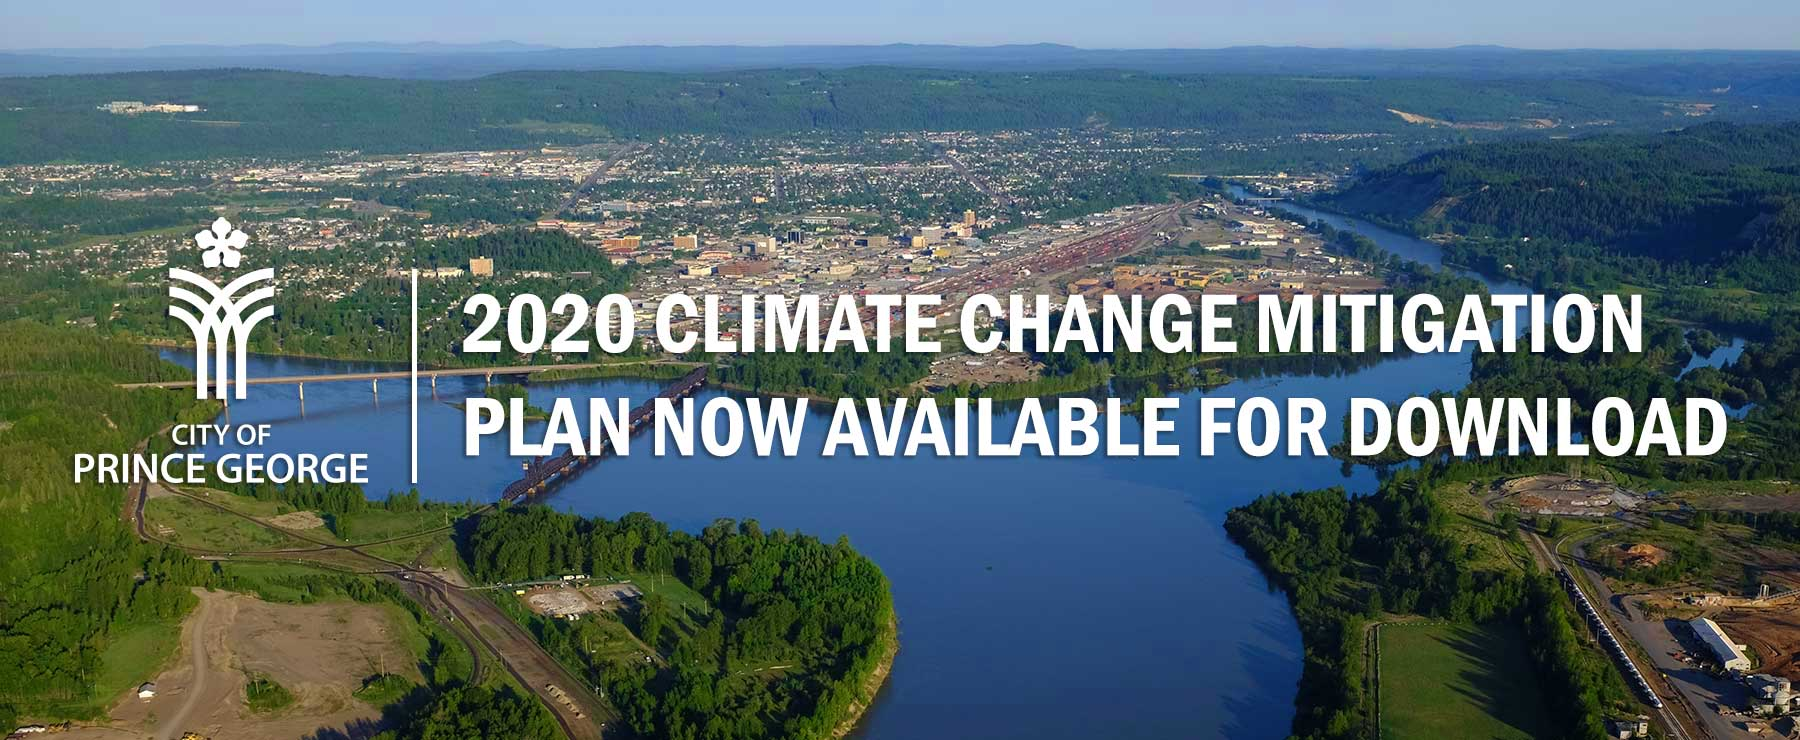 Download the 2020 Climate Change Mitigation Plan